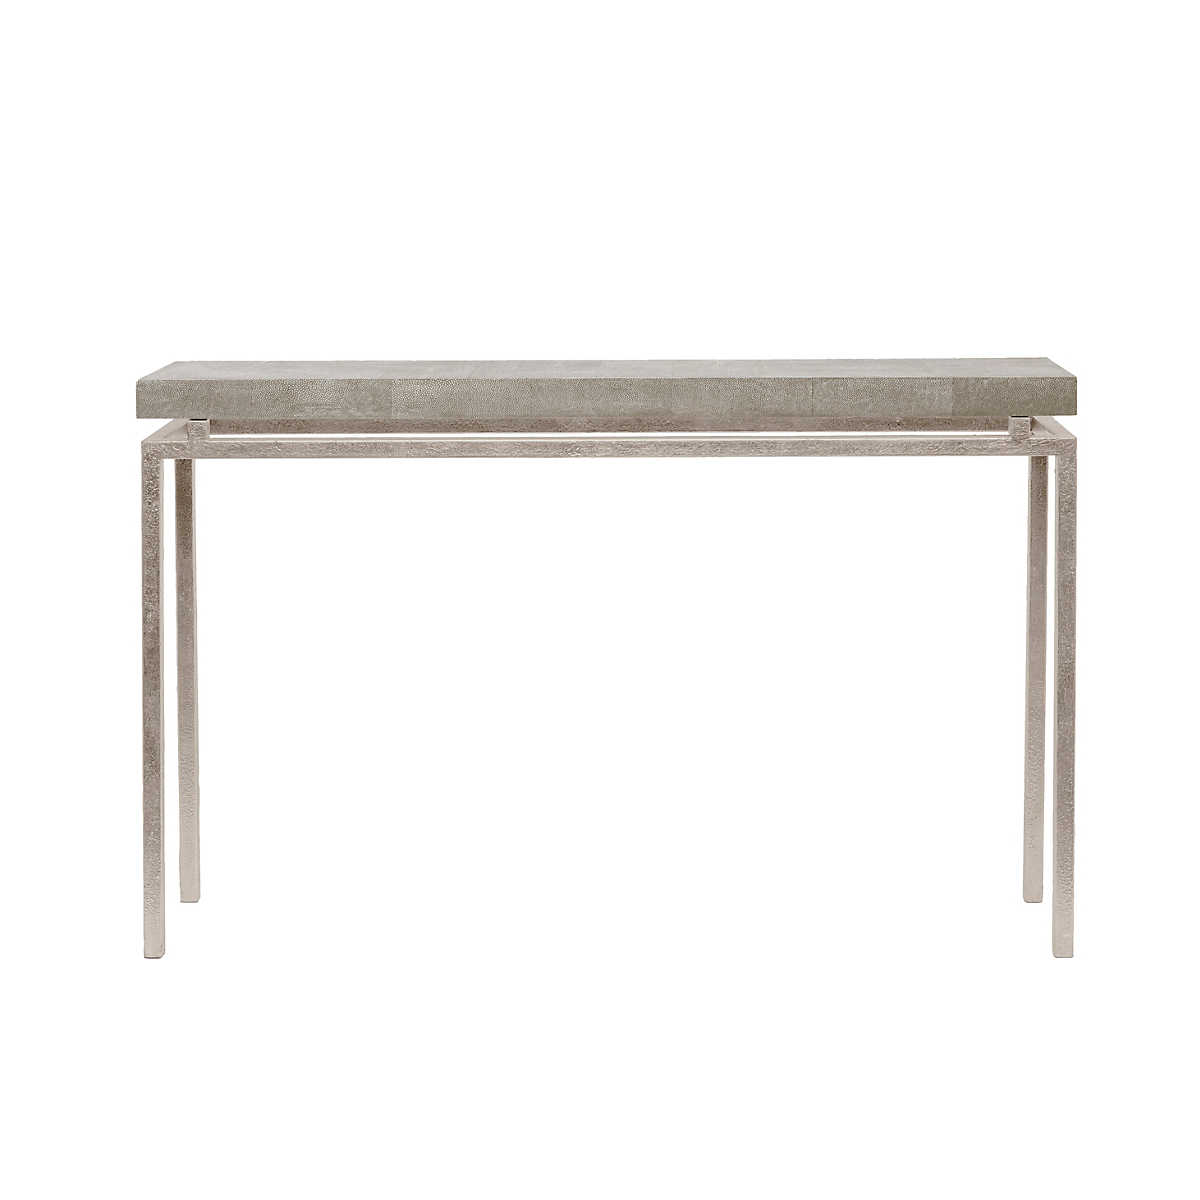 Sand Faux Shagreen Benjamin Narrow Console Furniture